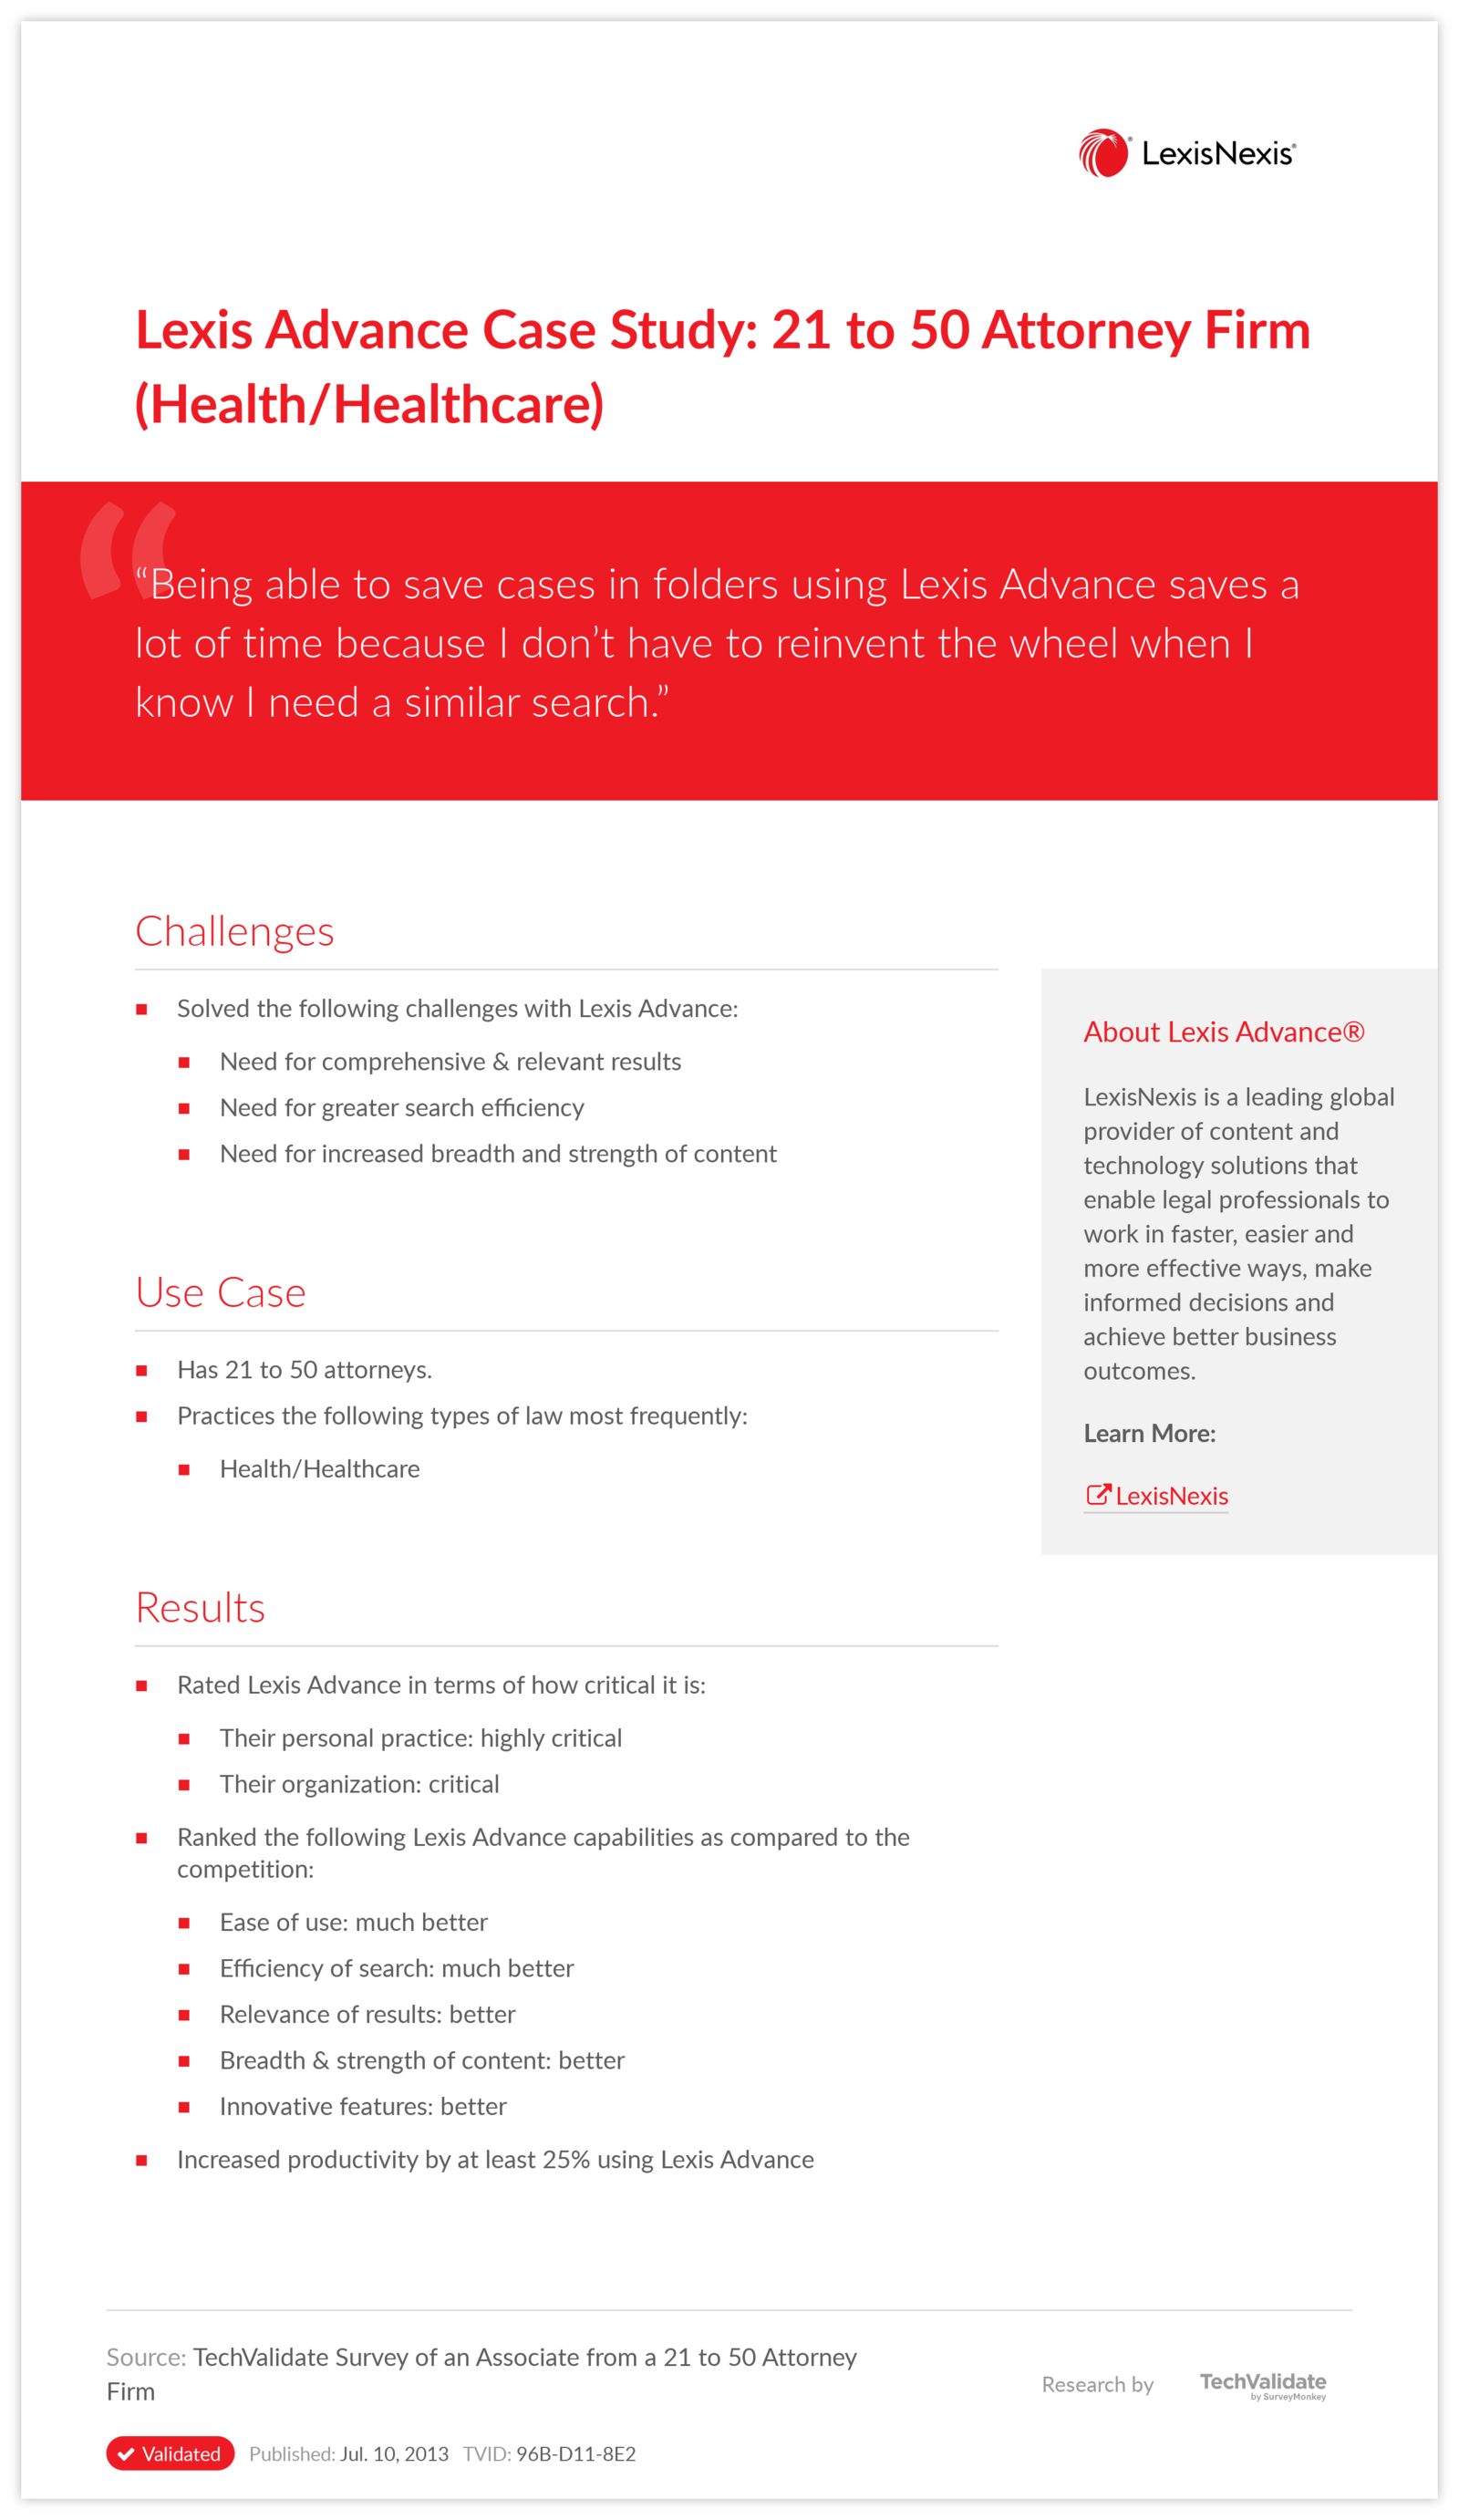 Lexis Advance Case Study: 21 to 50 Attorney Firm (Health/Healthcare)